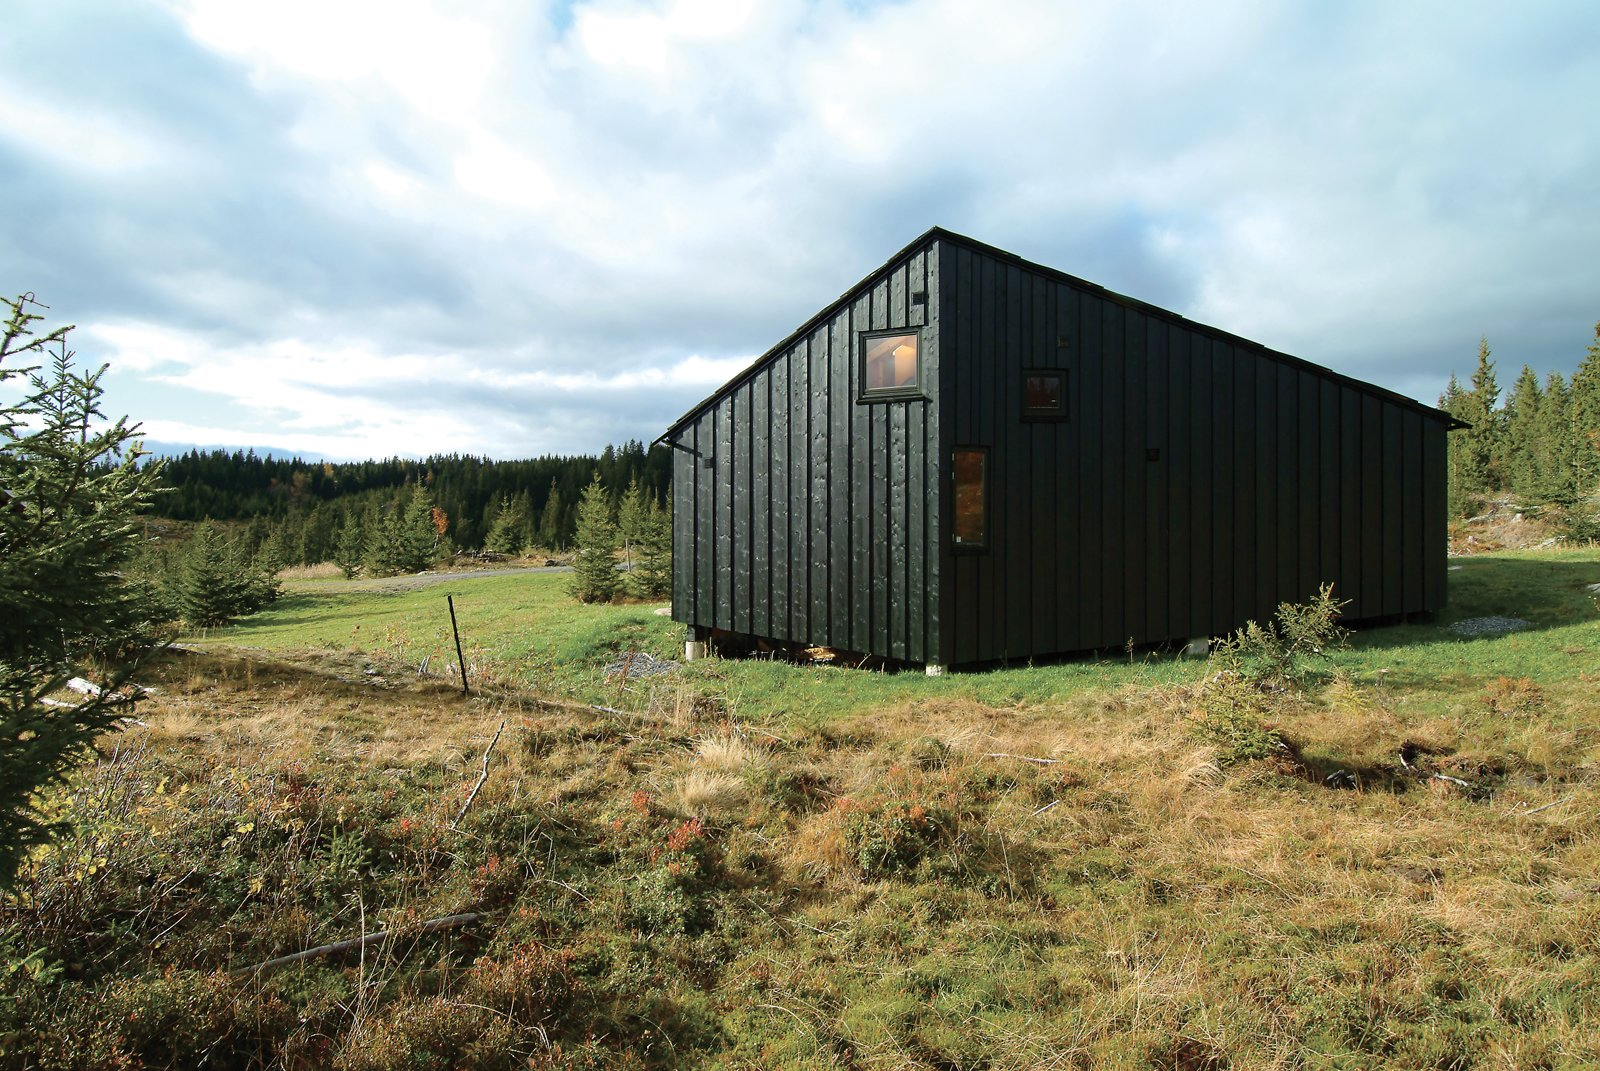 Photo 35 Of 101 In 101 Best Modern Cabins From Fjord Focus